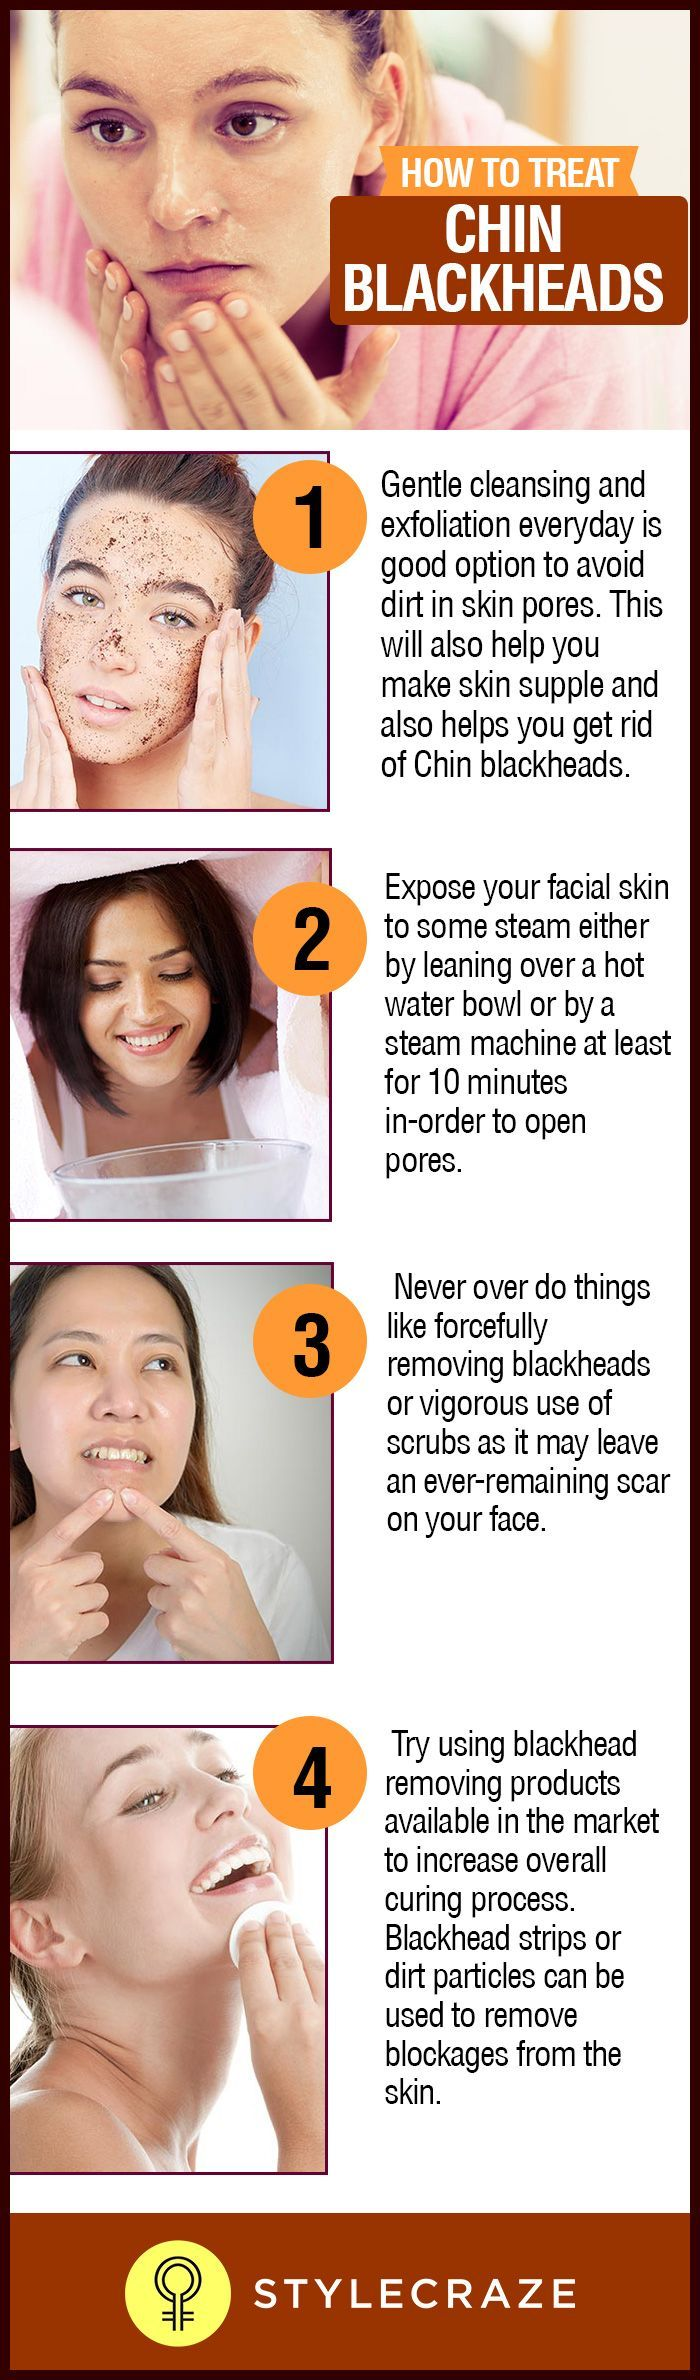 How To Get Rid Of Blackheads On The Chin Fast At Home  Beauty